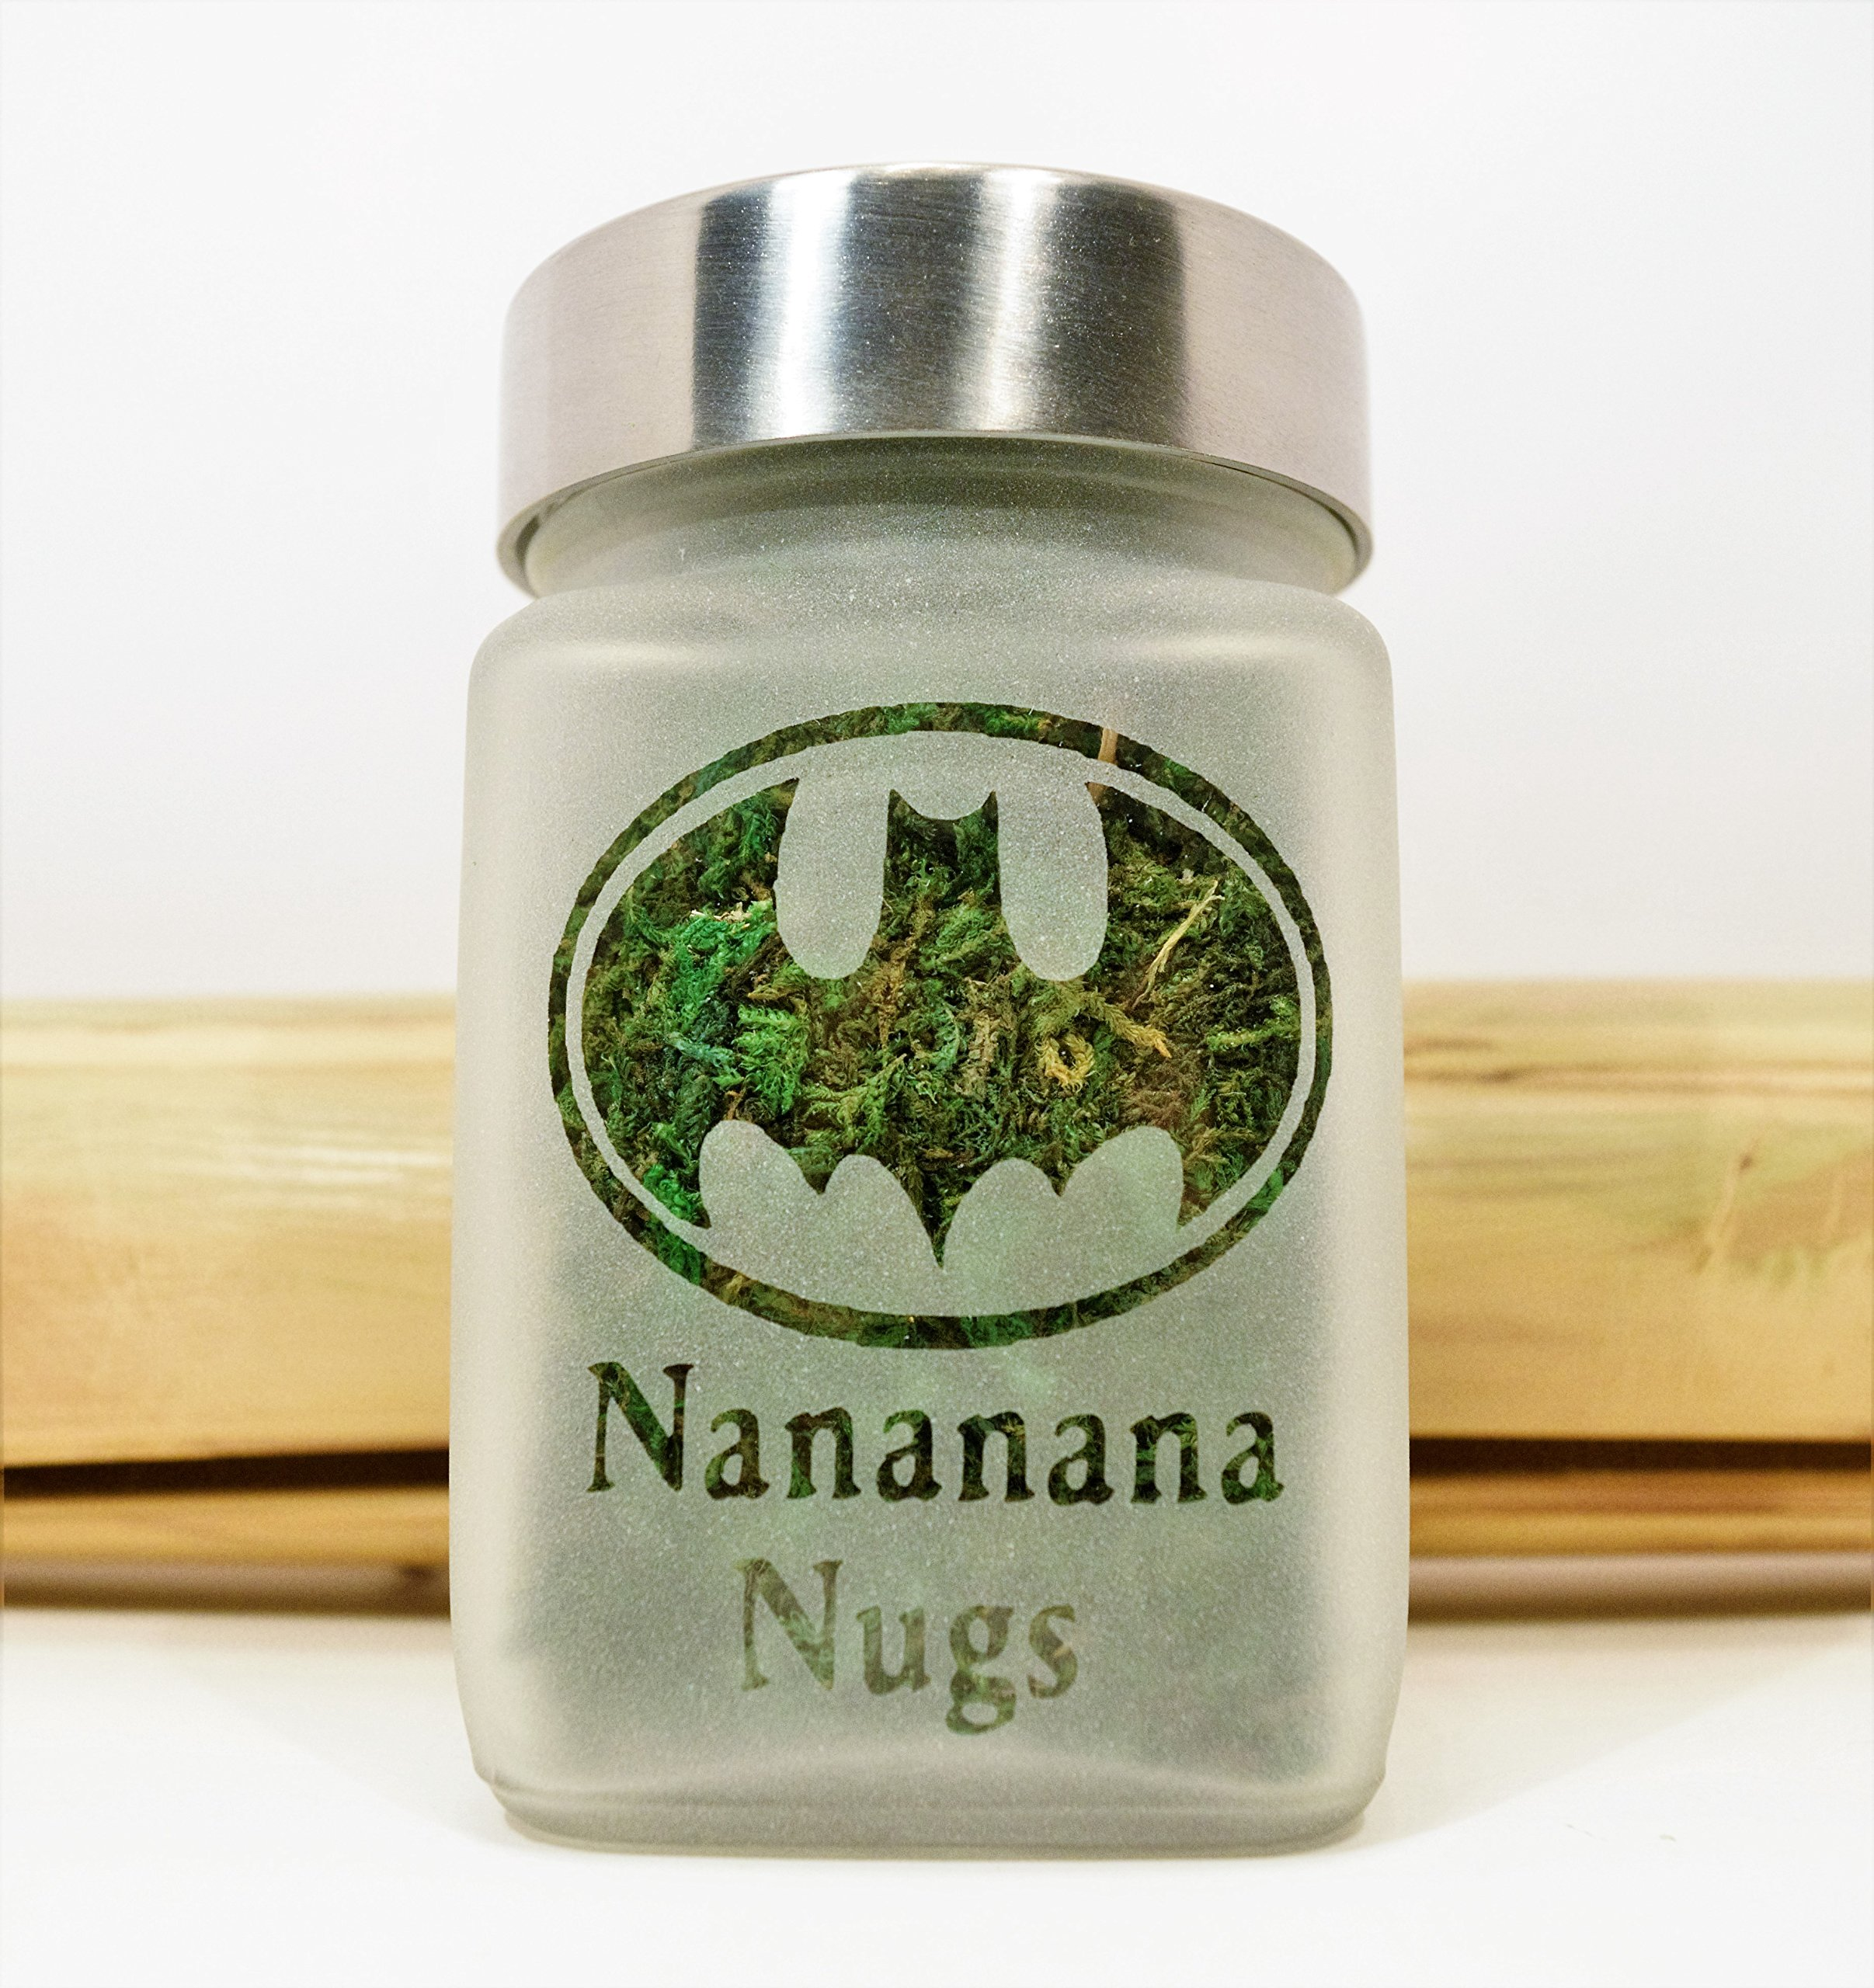 Retro Batman Stash Jar | Nananana Nugs Weed Jar and Weed Accessories | Stoner Gifts, Stash Jars & Stoner Accessories by Twisted420Glass (Image #2)